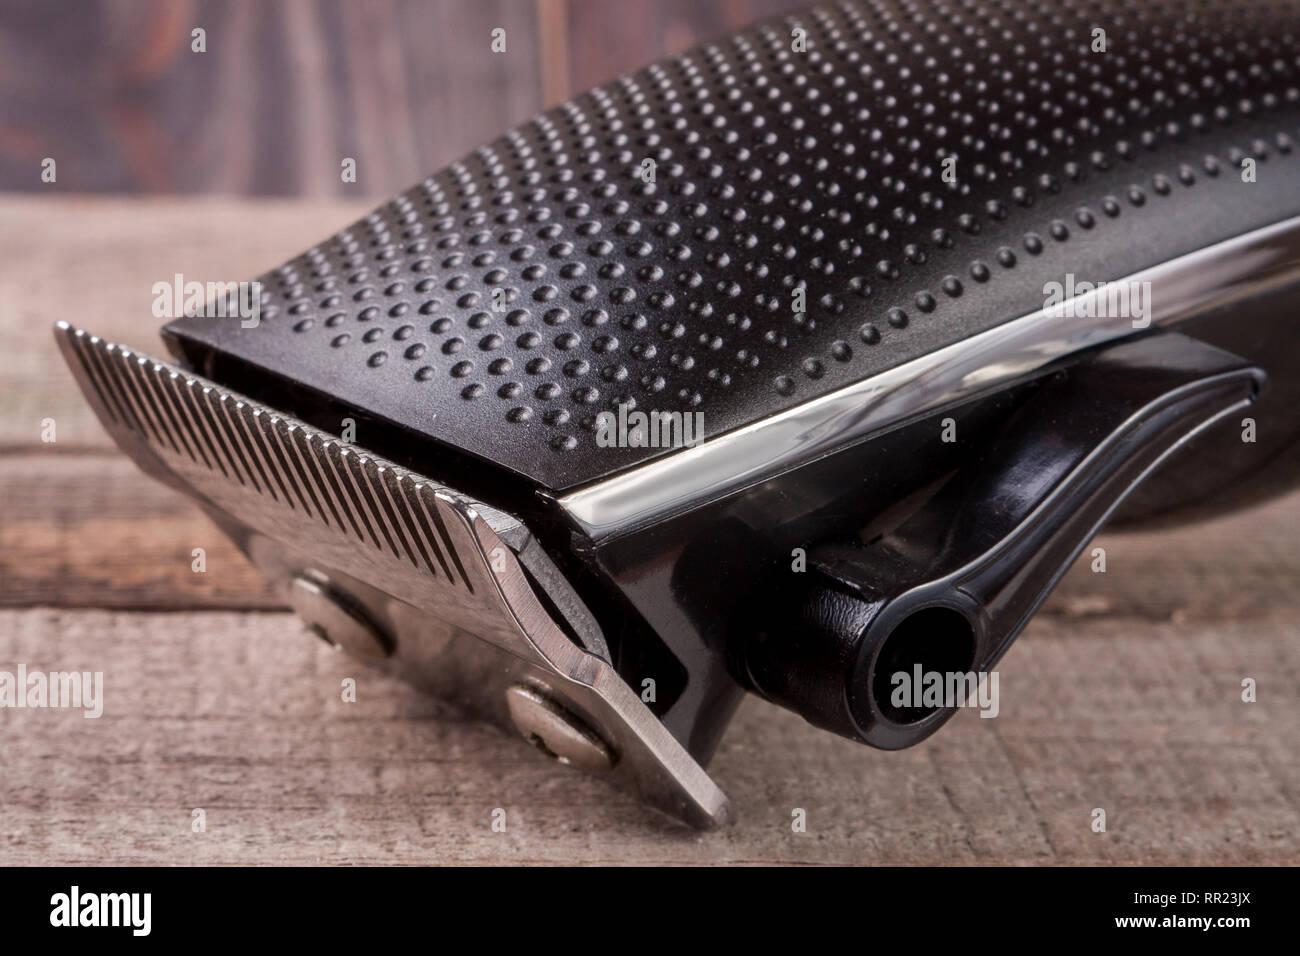 hair trimmer on an old wooden background closeup - Stock Image